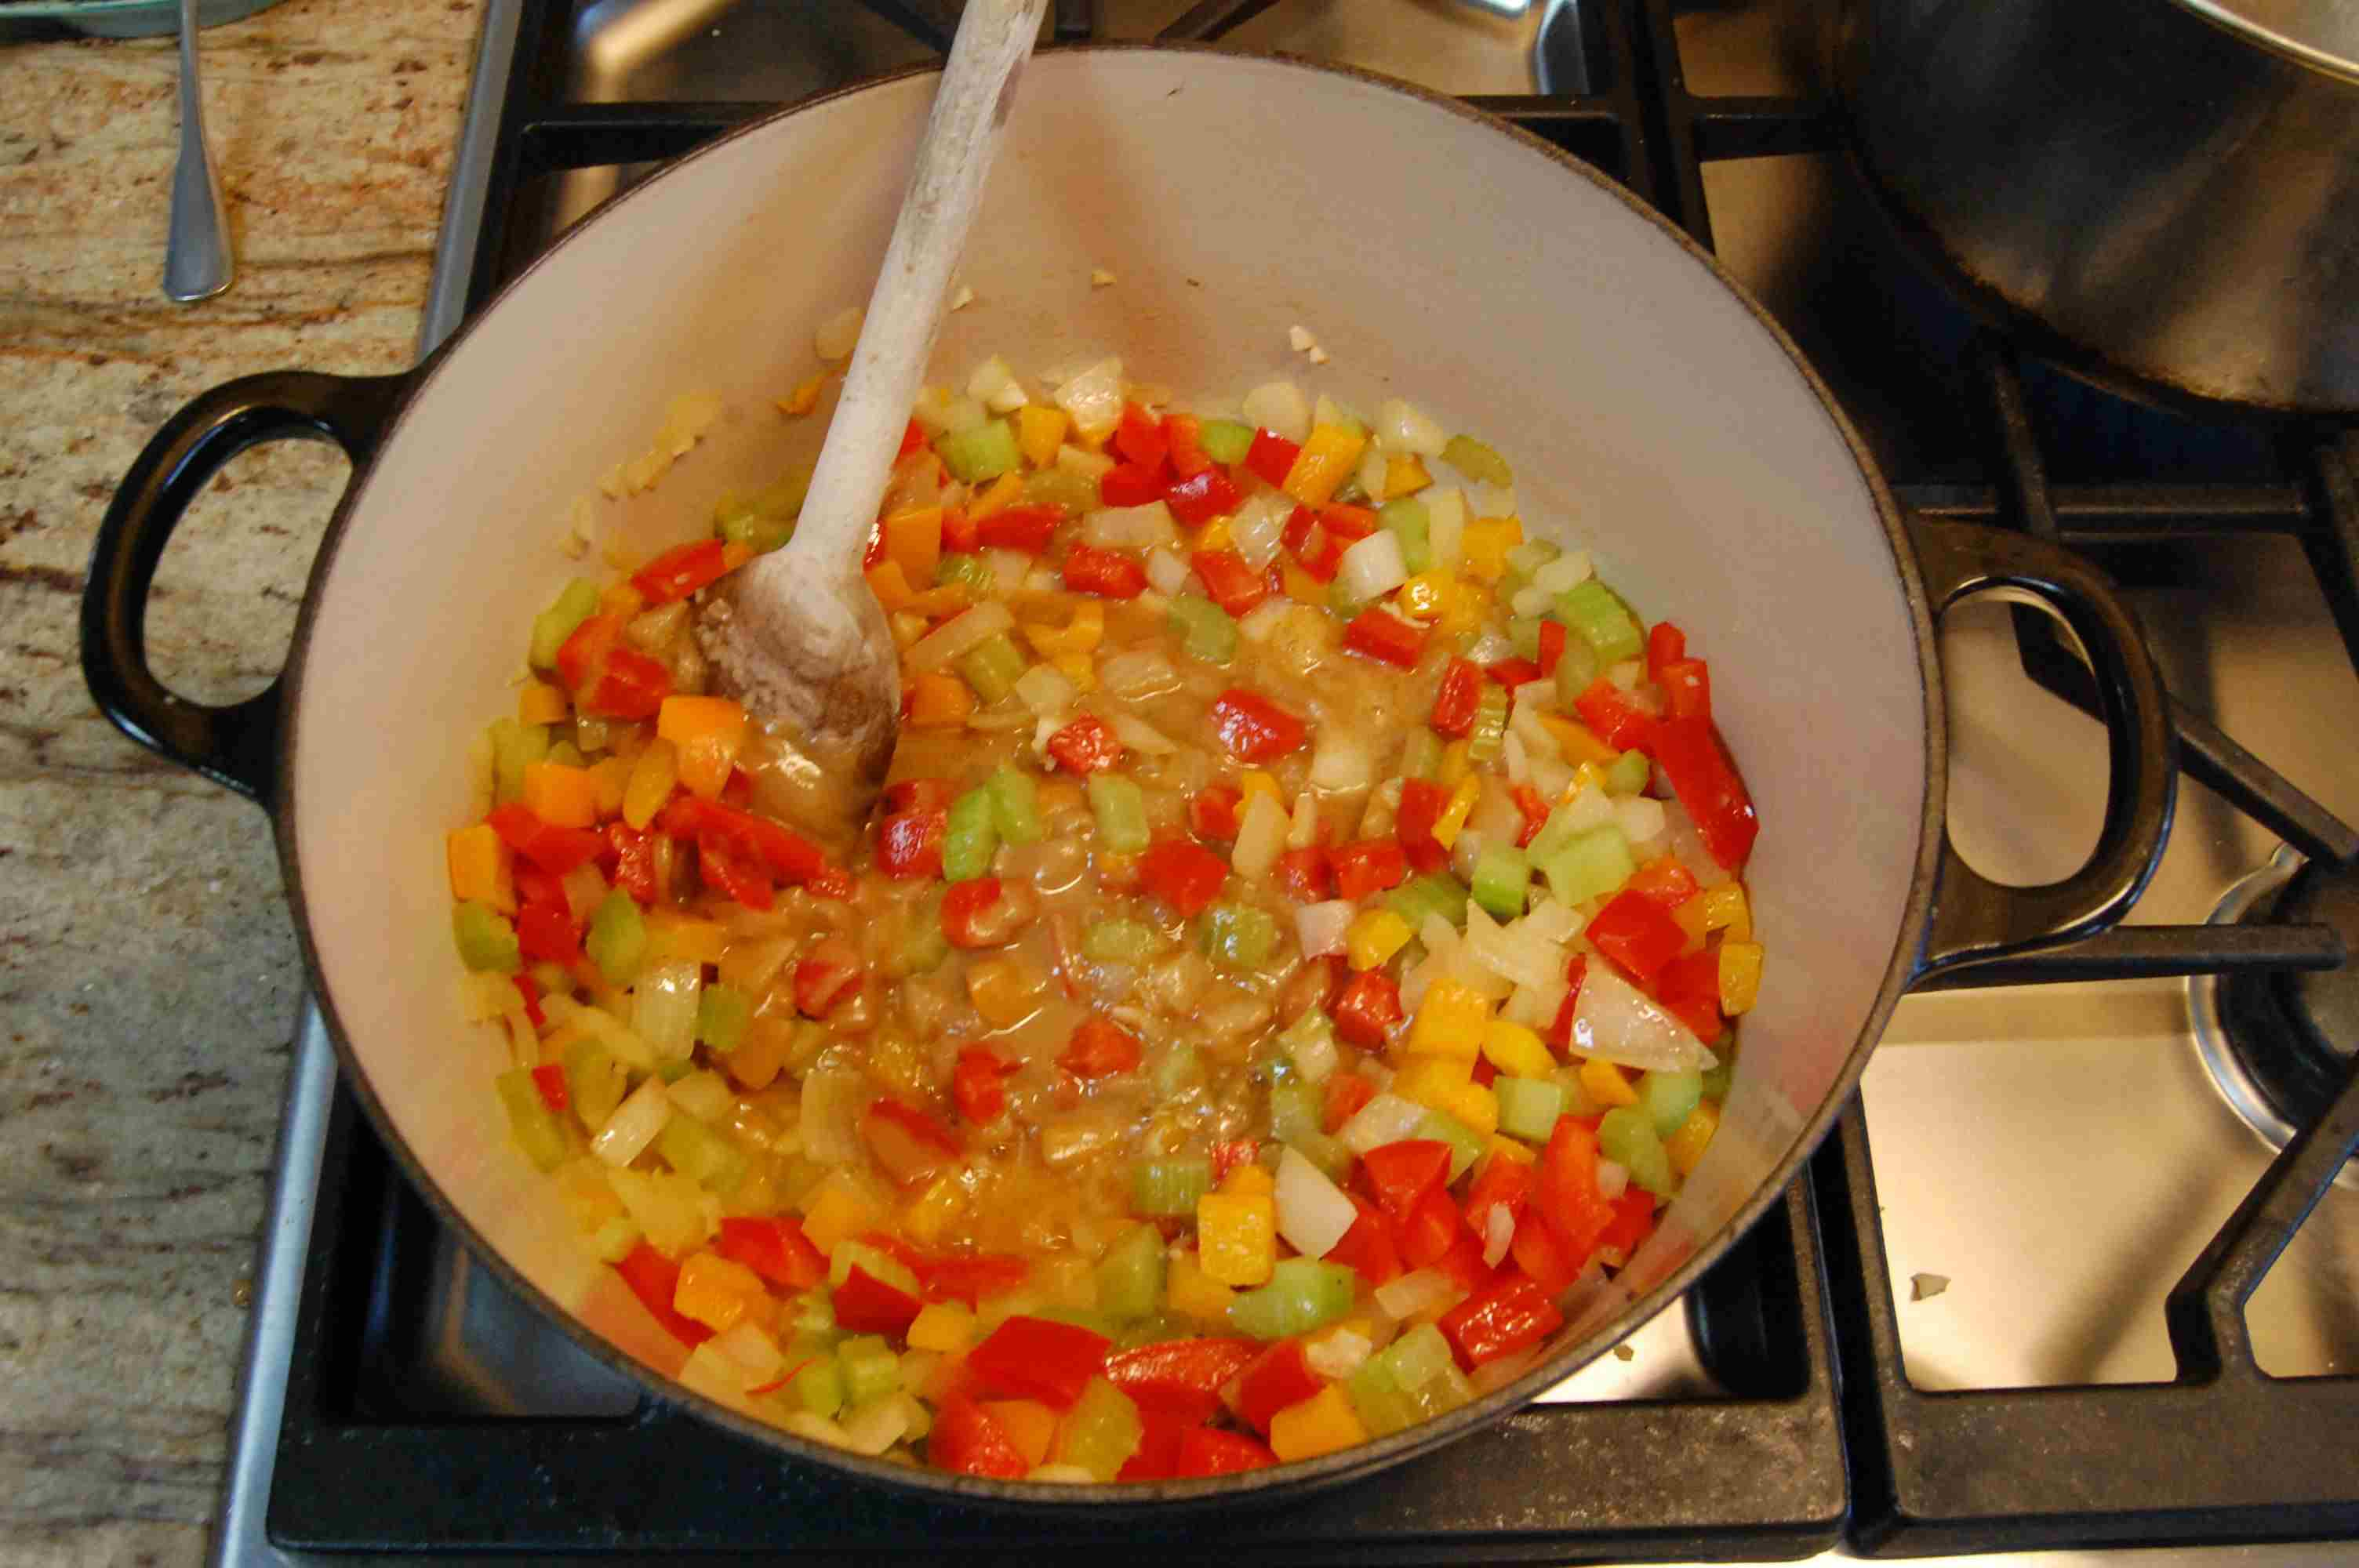 Adding roux to vegetables